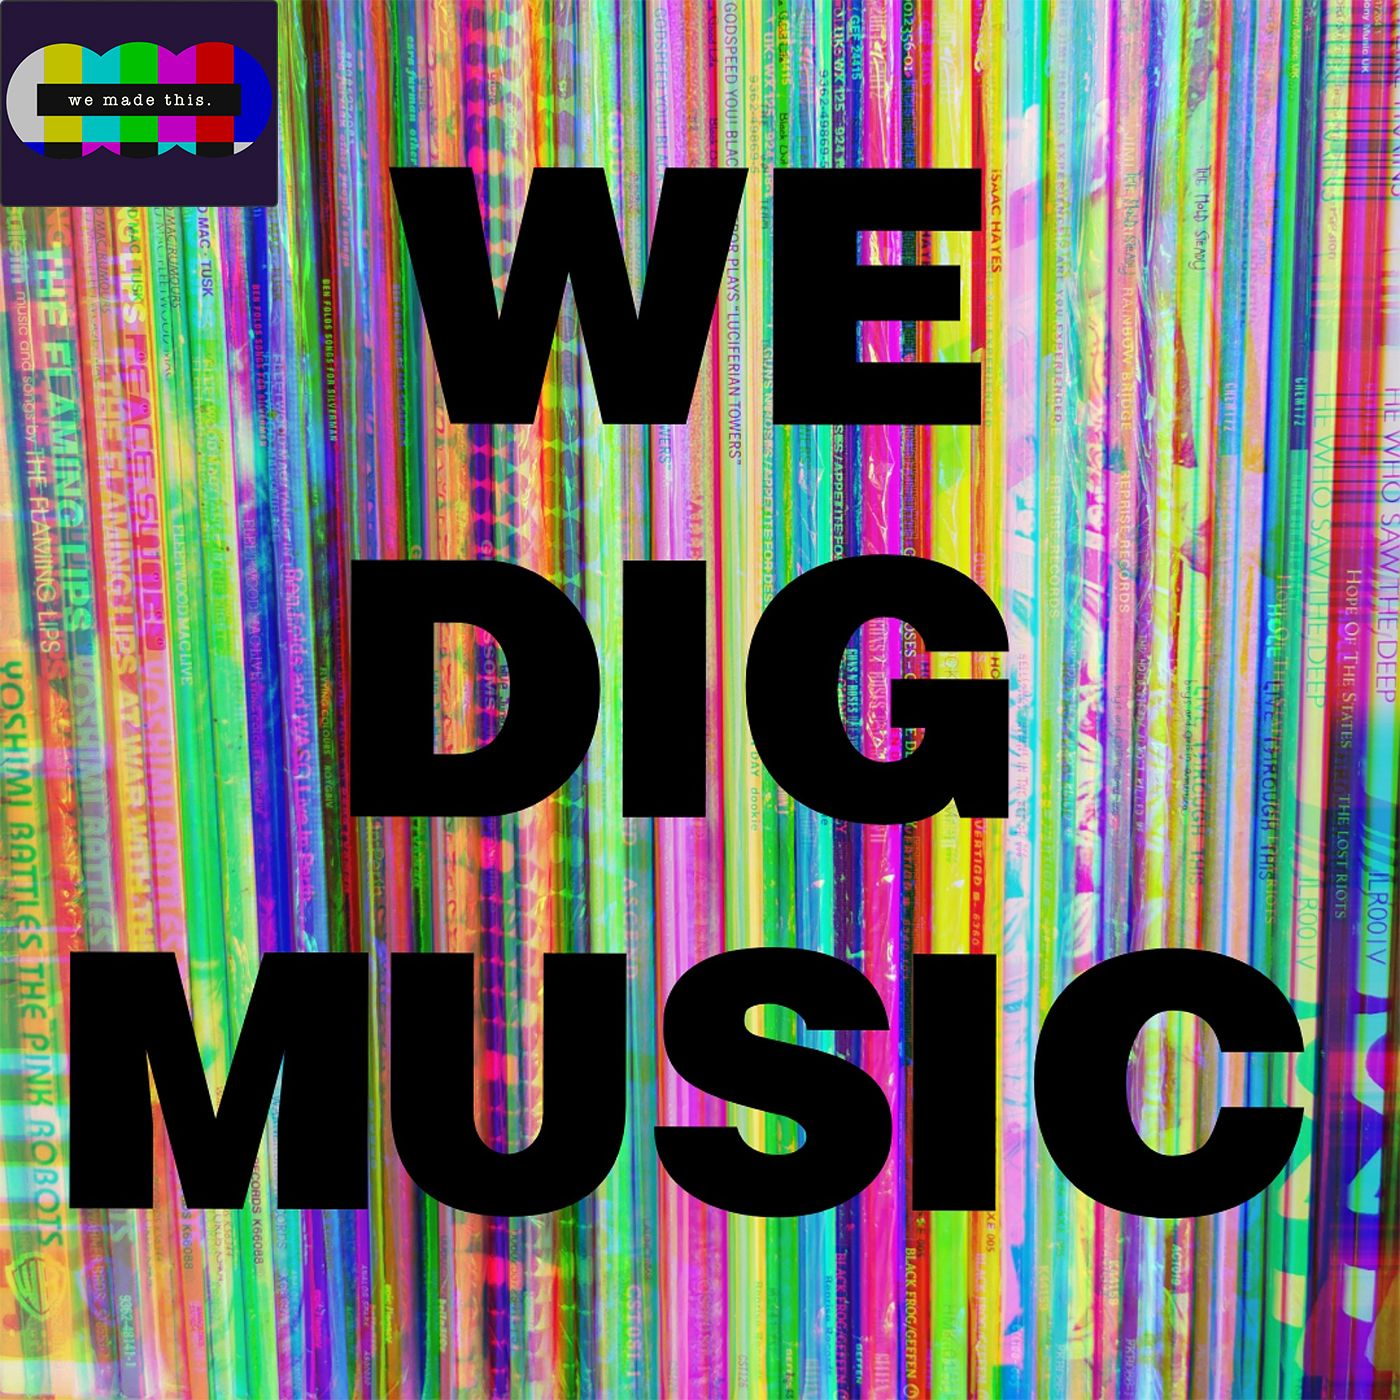 We Dig Music phase 2 teaser...